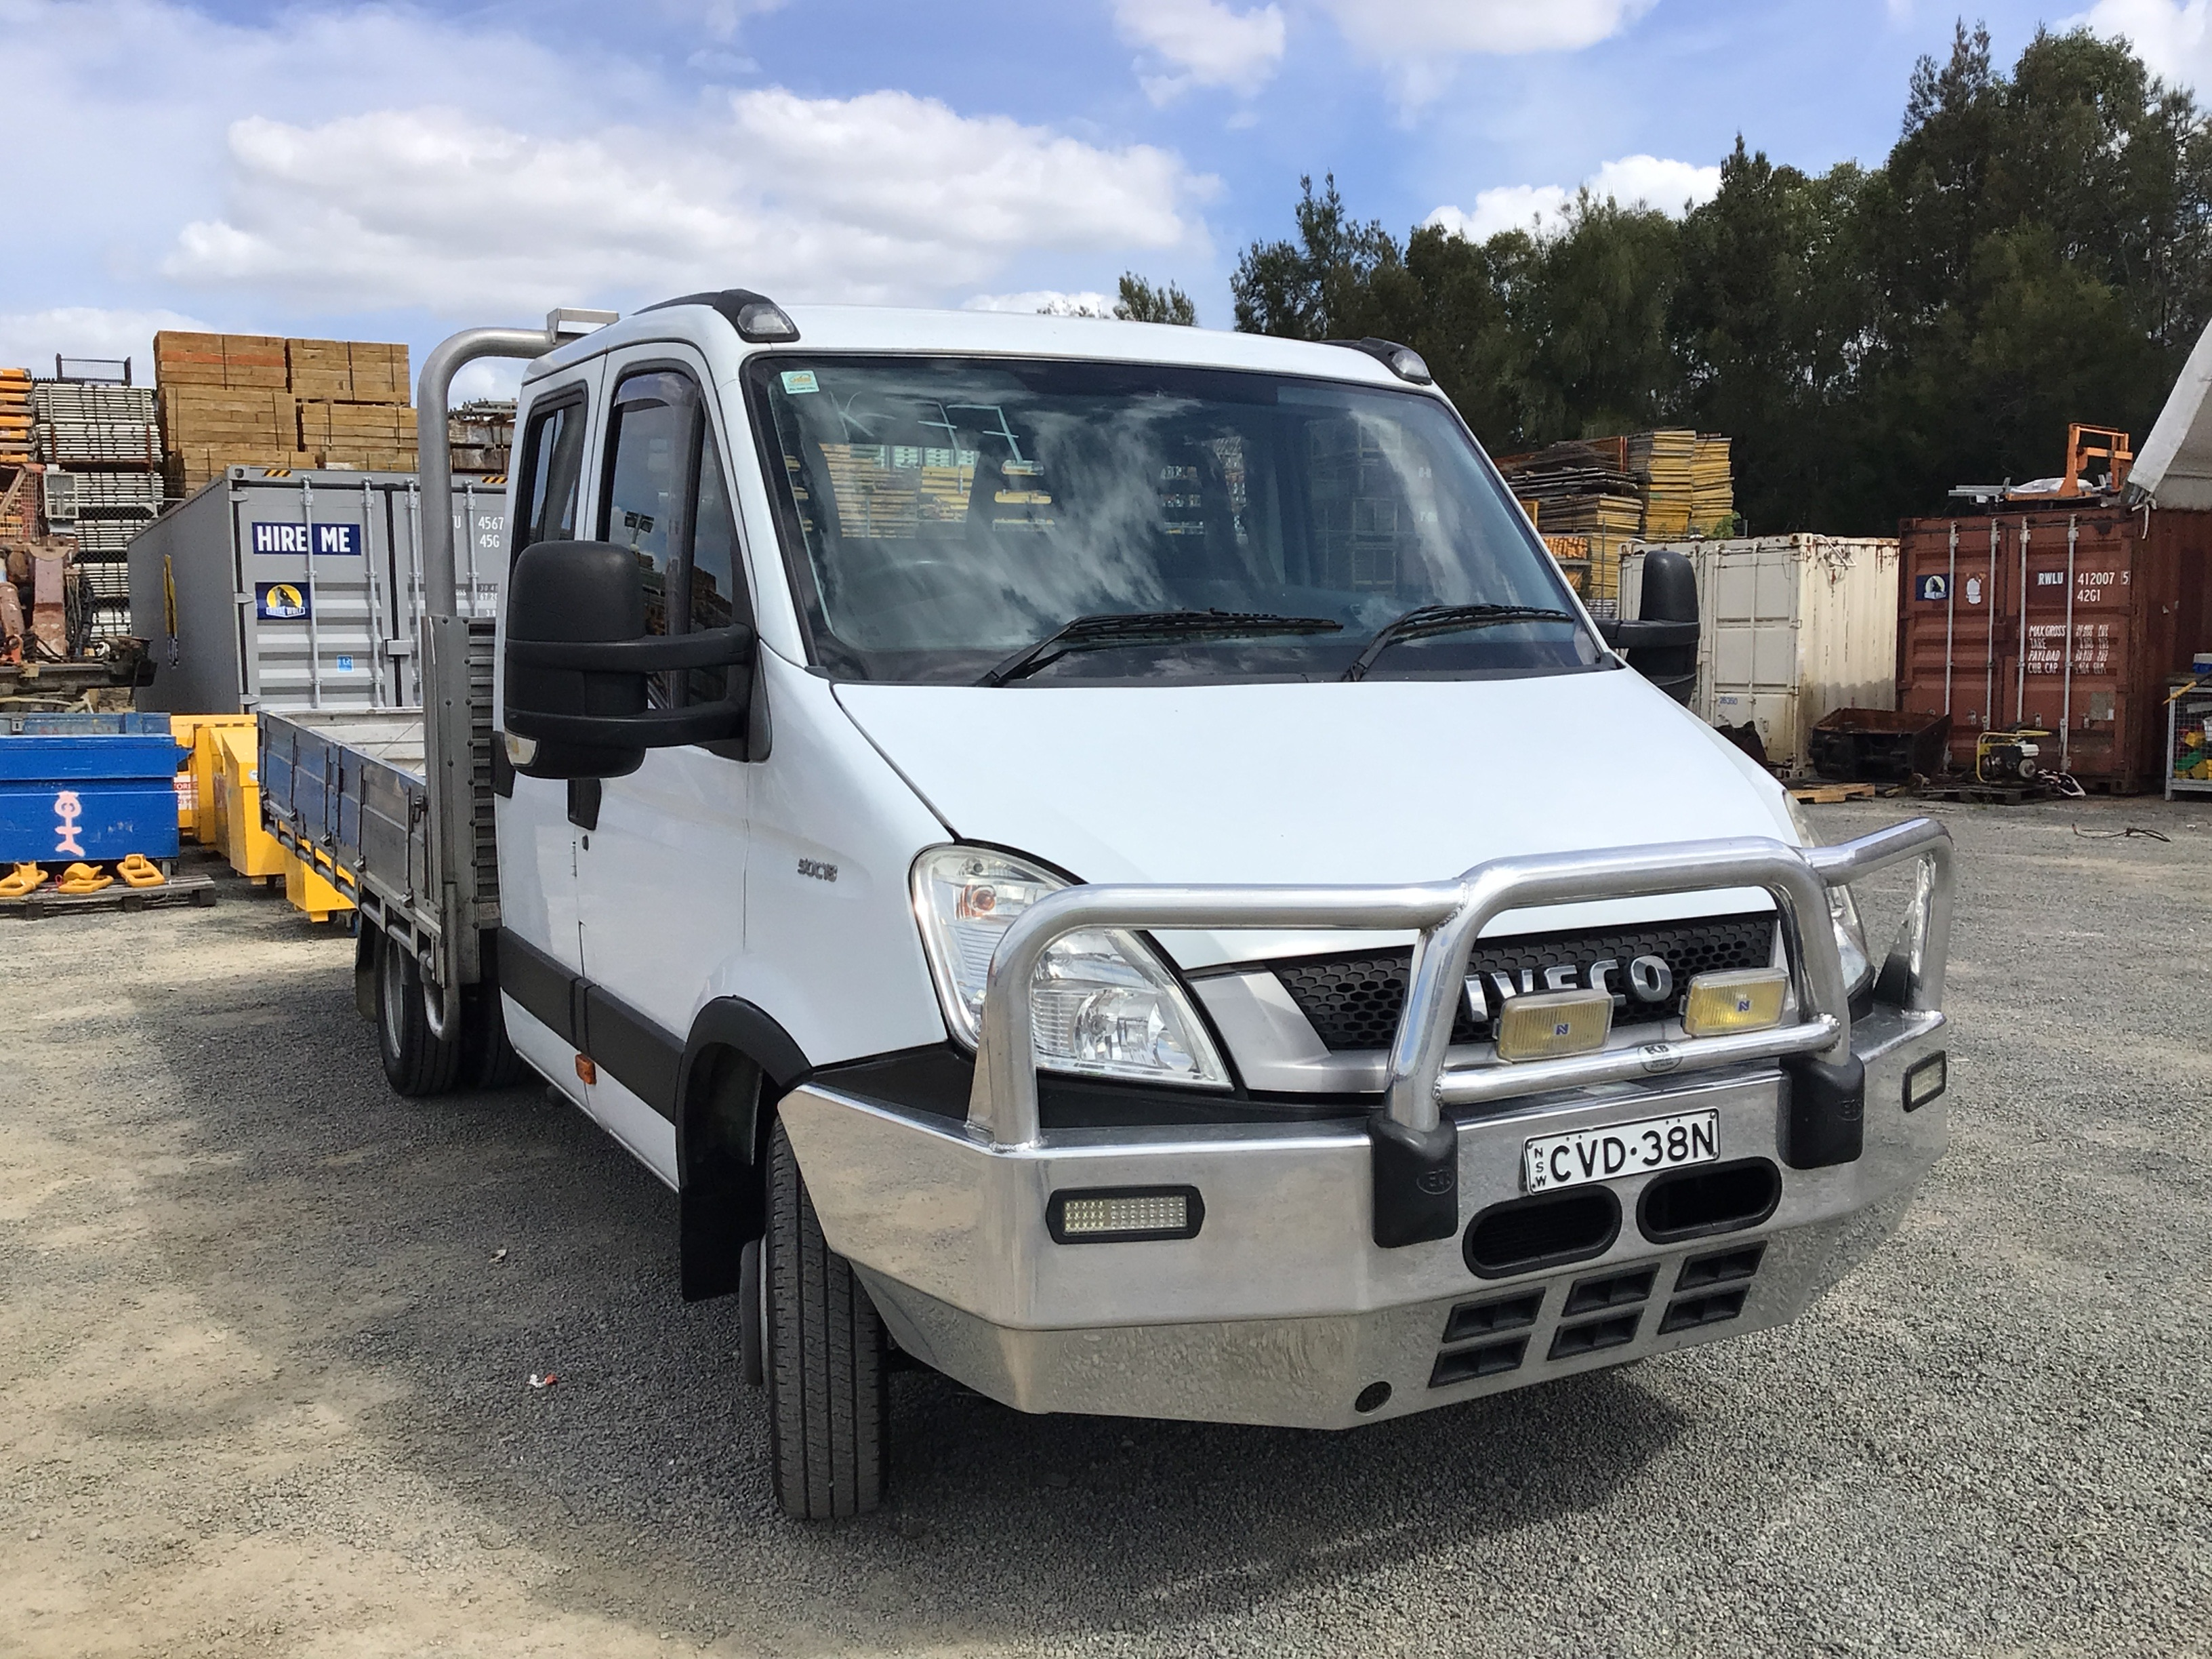 2010 Iveco 50C18 4 x 2 Cab Chassis Truck